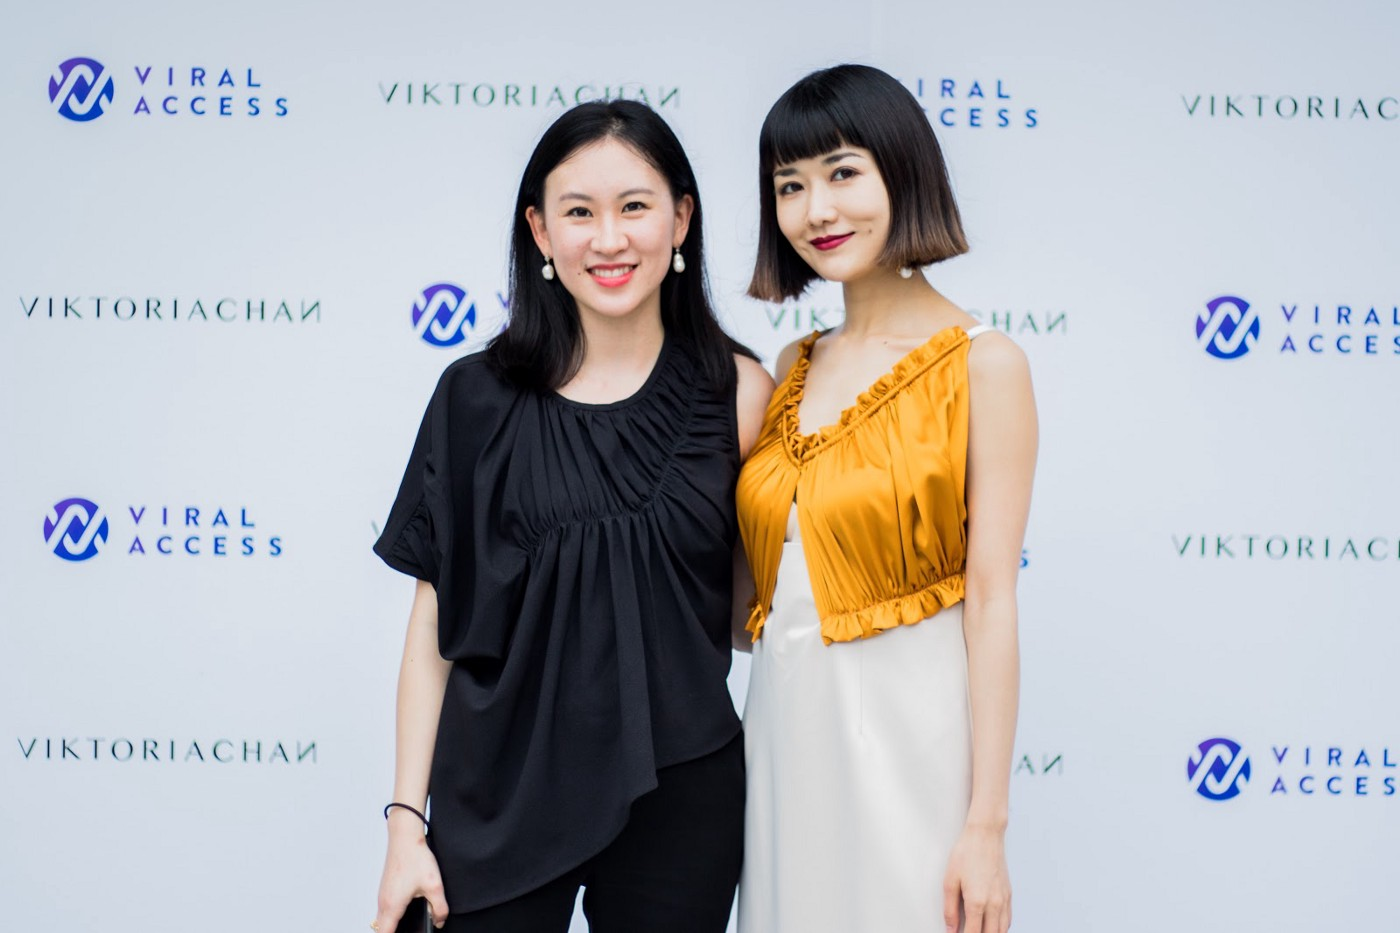 2021 Influencer Marketing Trends 3. Two female influencers pose for a photo at an event hosted by Viral Access in Shanghai.